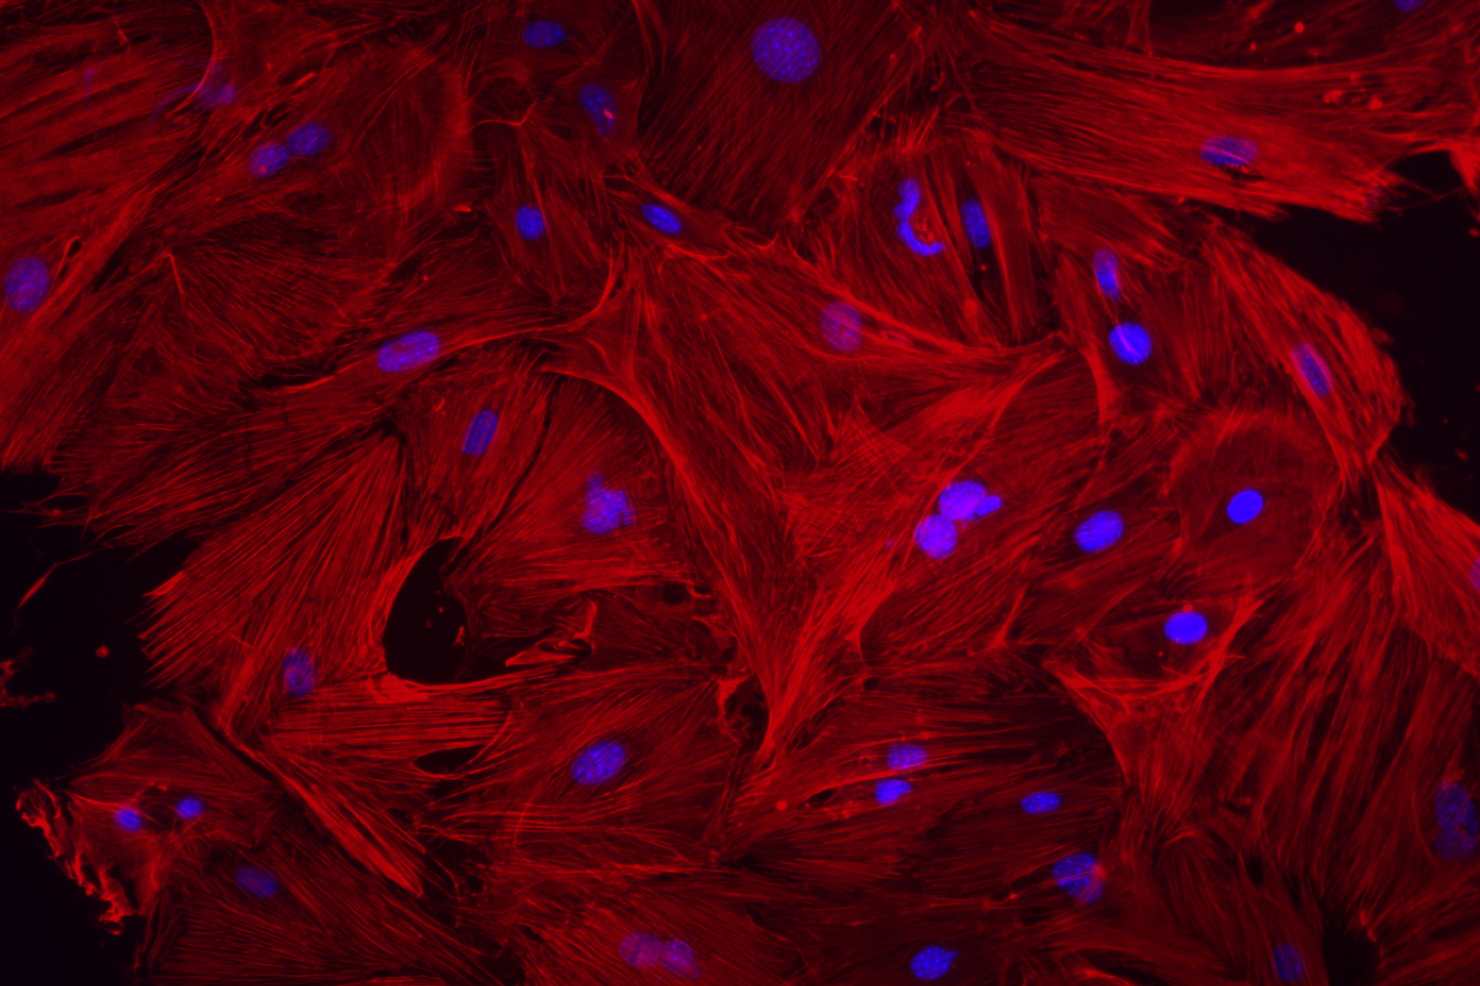 Mouse heart fibroblasts